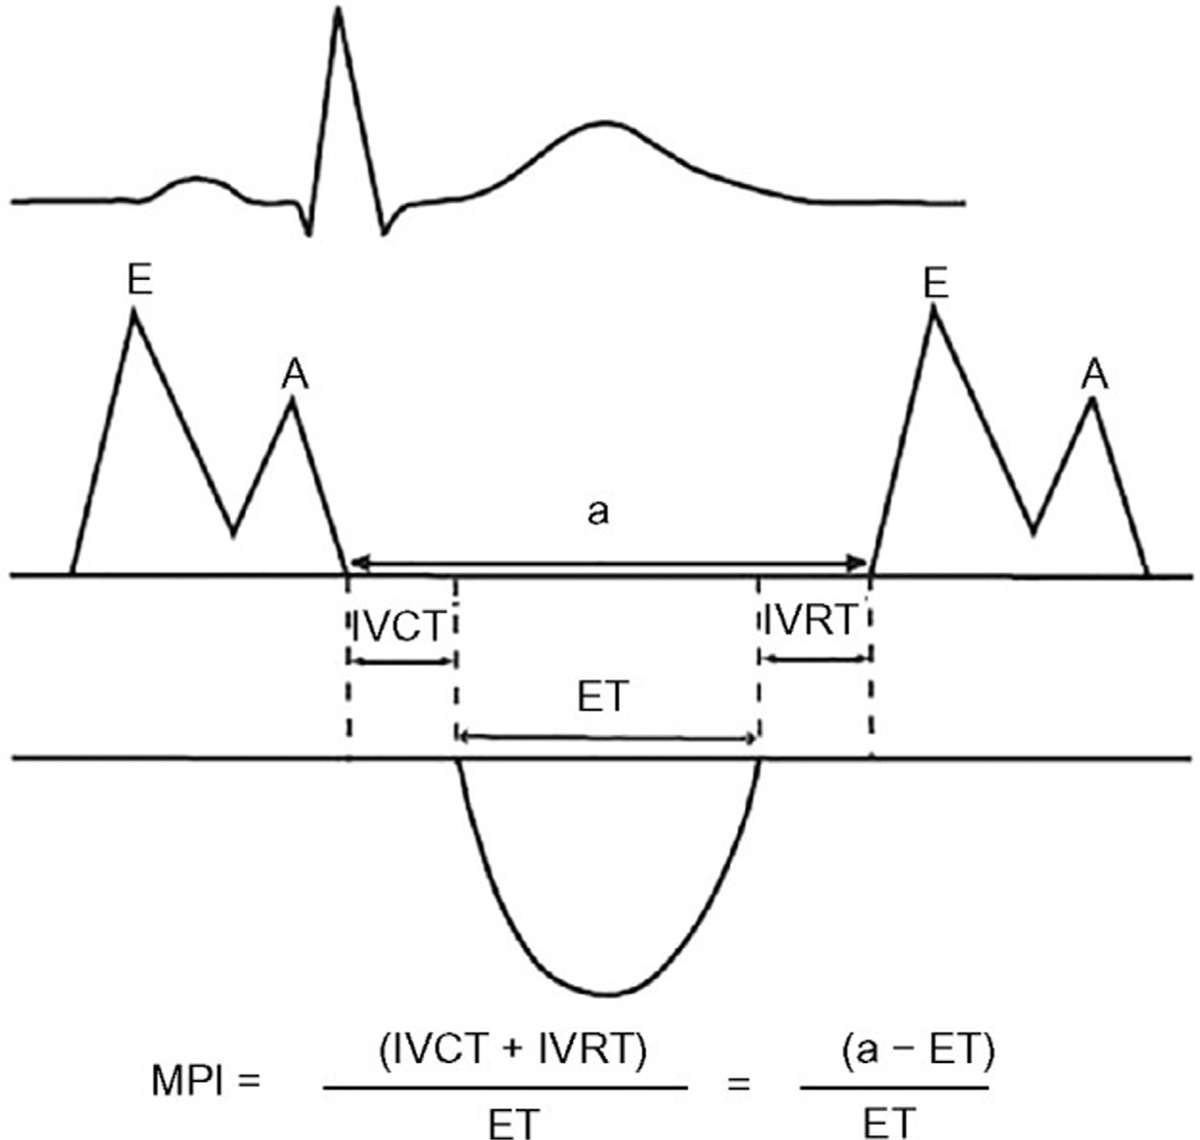 hight resolution of et ejection time ivct isovolumic contraction time ivct isovolumic contraction time ivrt isovolumic relaxation time